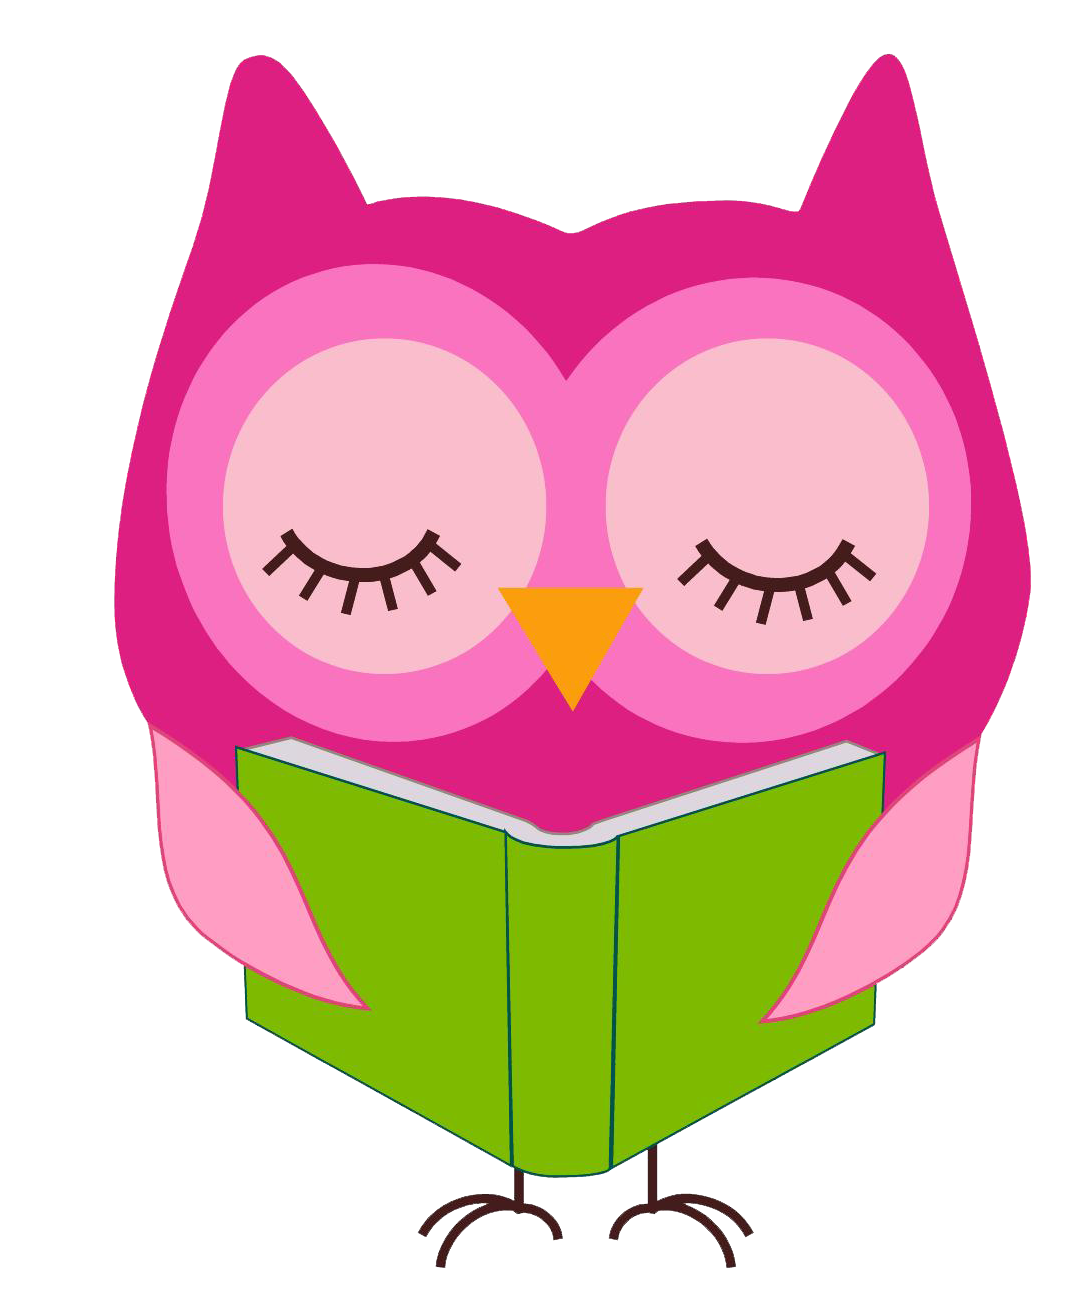 owl reading clip art cliparts co pinteres rh pinterest com Bike Clip Art Colorful Owl Clip Art